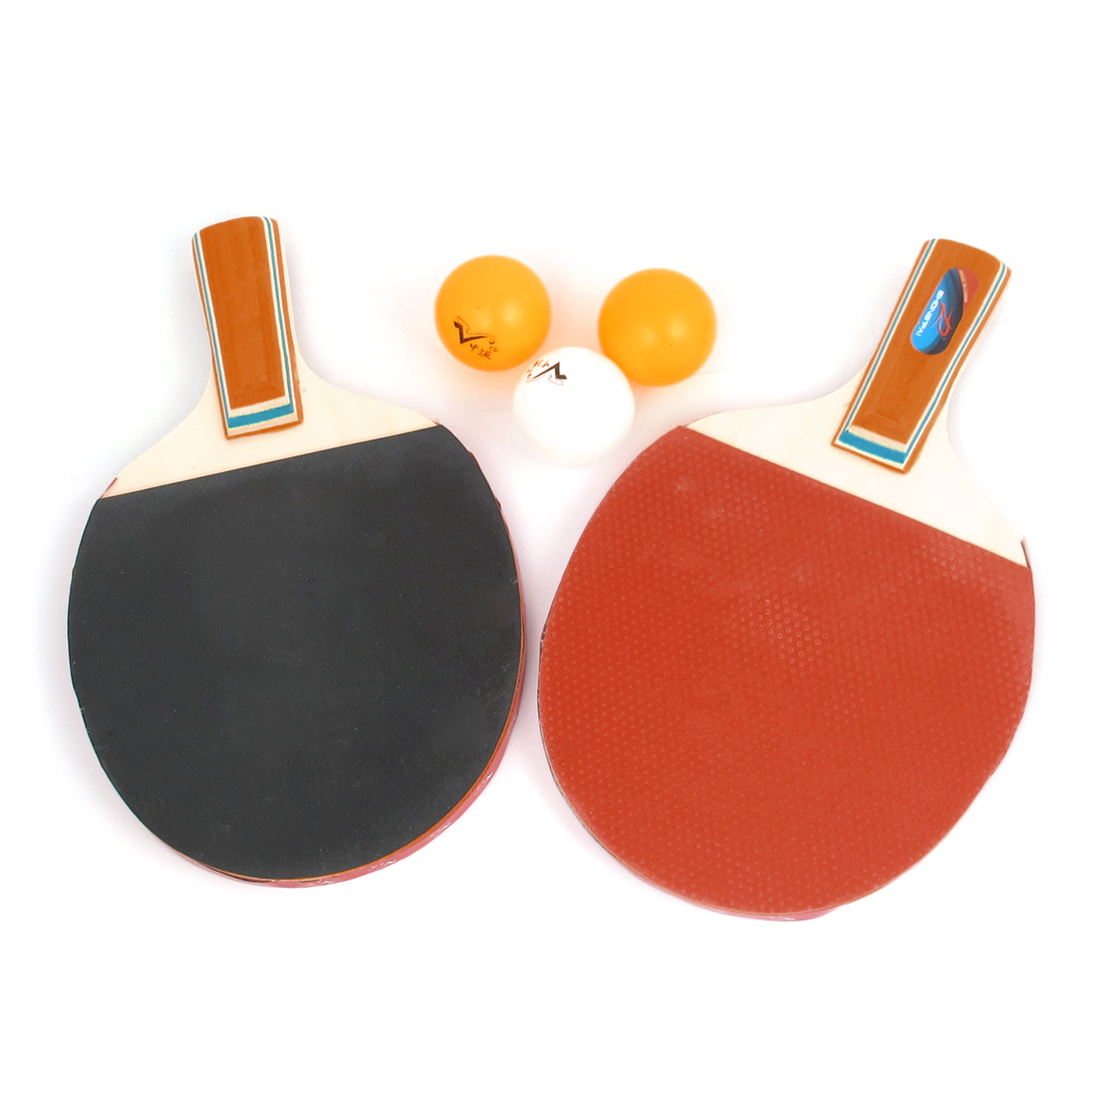 5 in 1 Wooden Ping Pong Paddles Recreational Table Tennis Racket Bat Balls